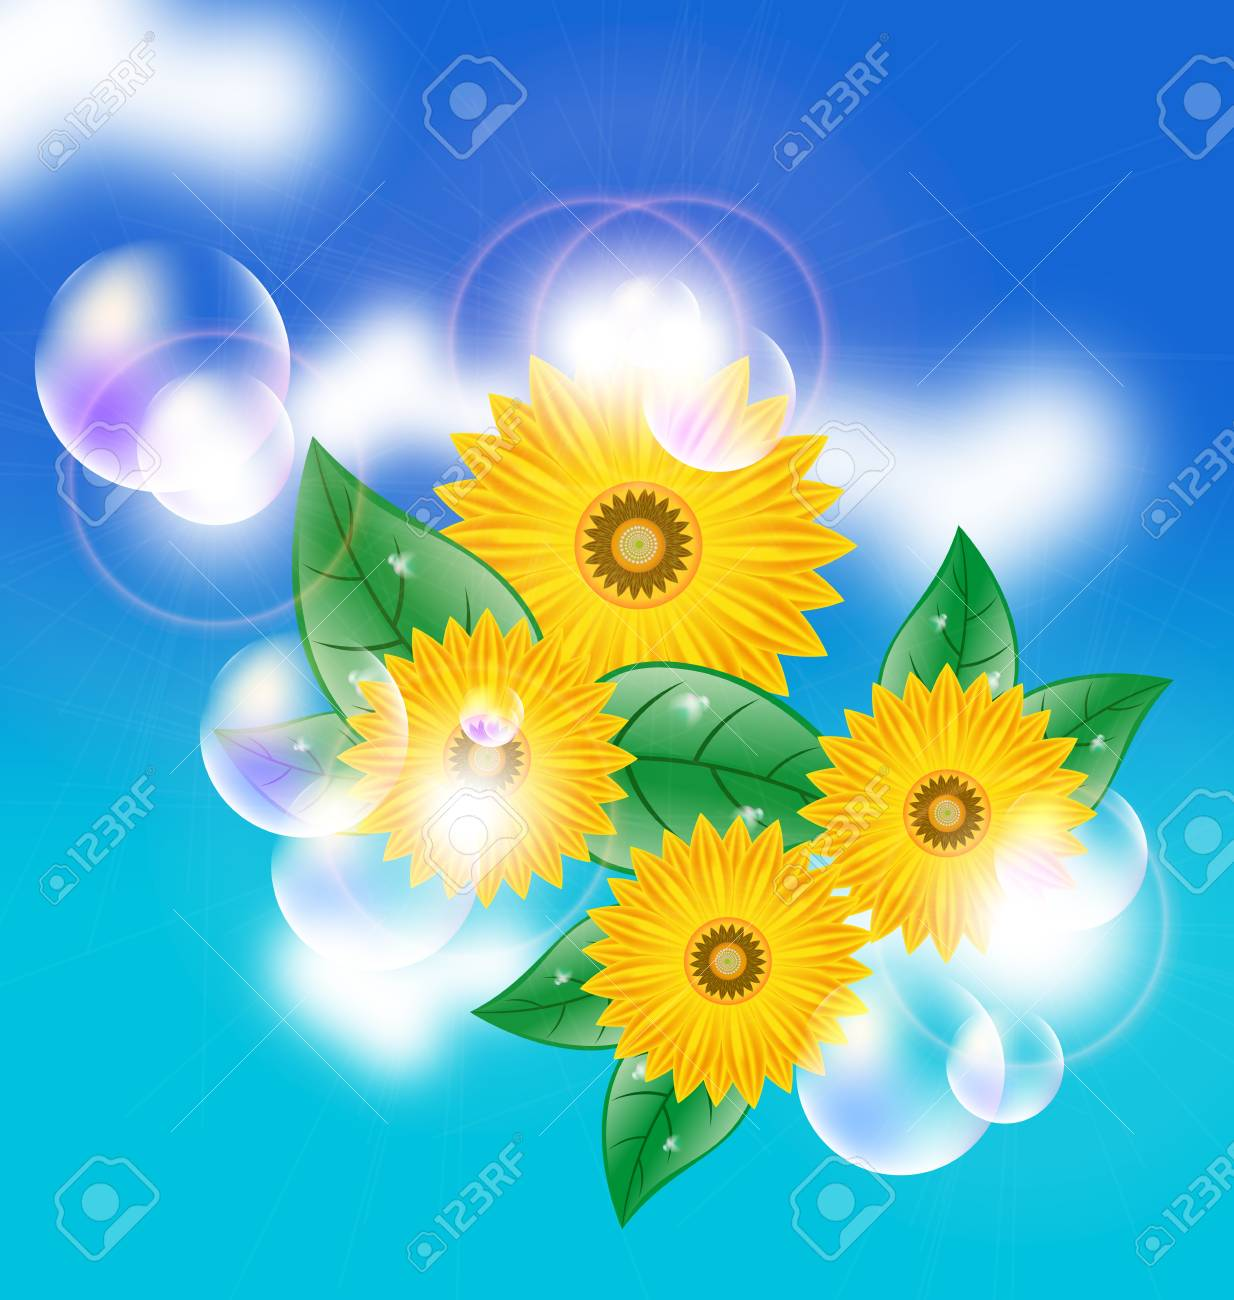 Background with a field of sunflowers and blue sky Stock Vector - 11513765